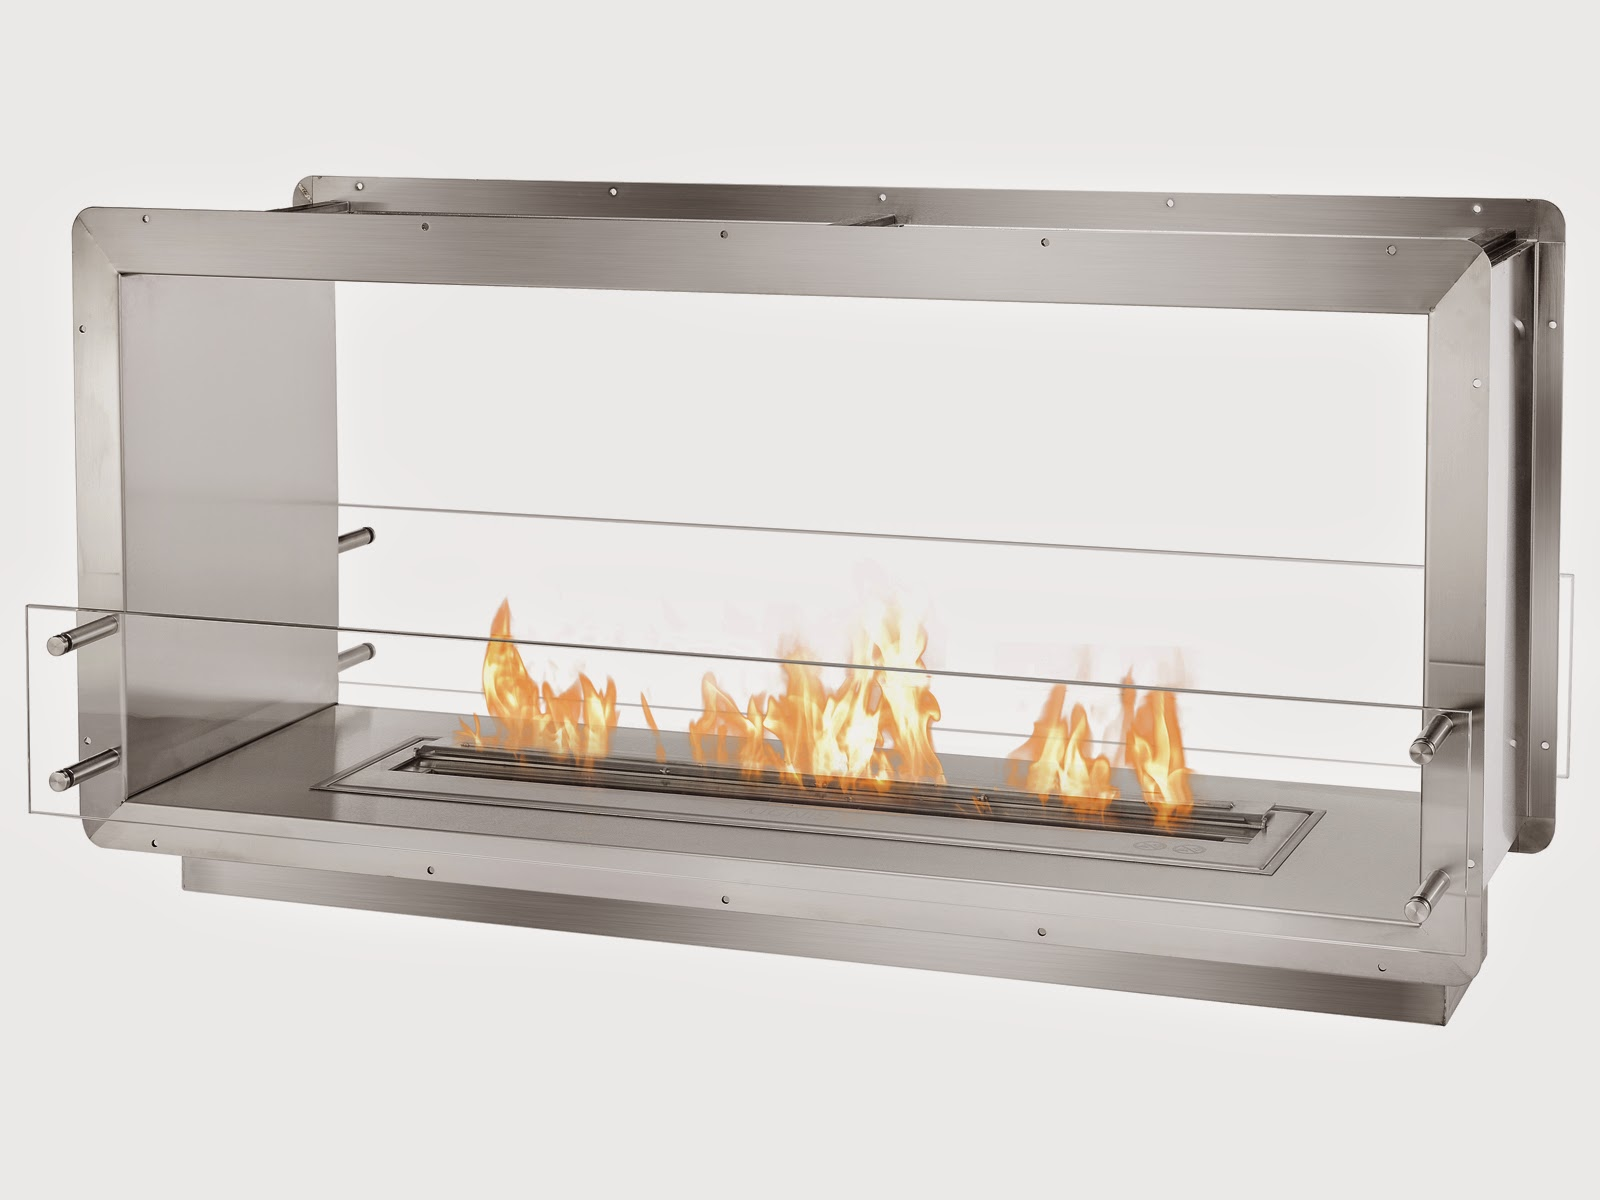 ignis ethanol fireplace inserts fire boxes biggest bio